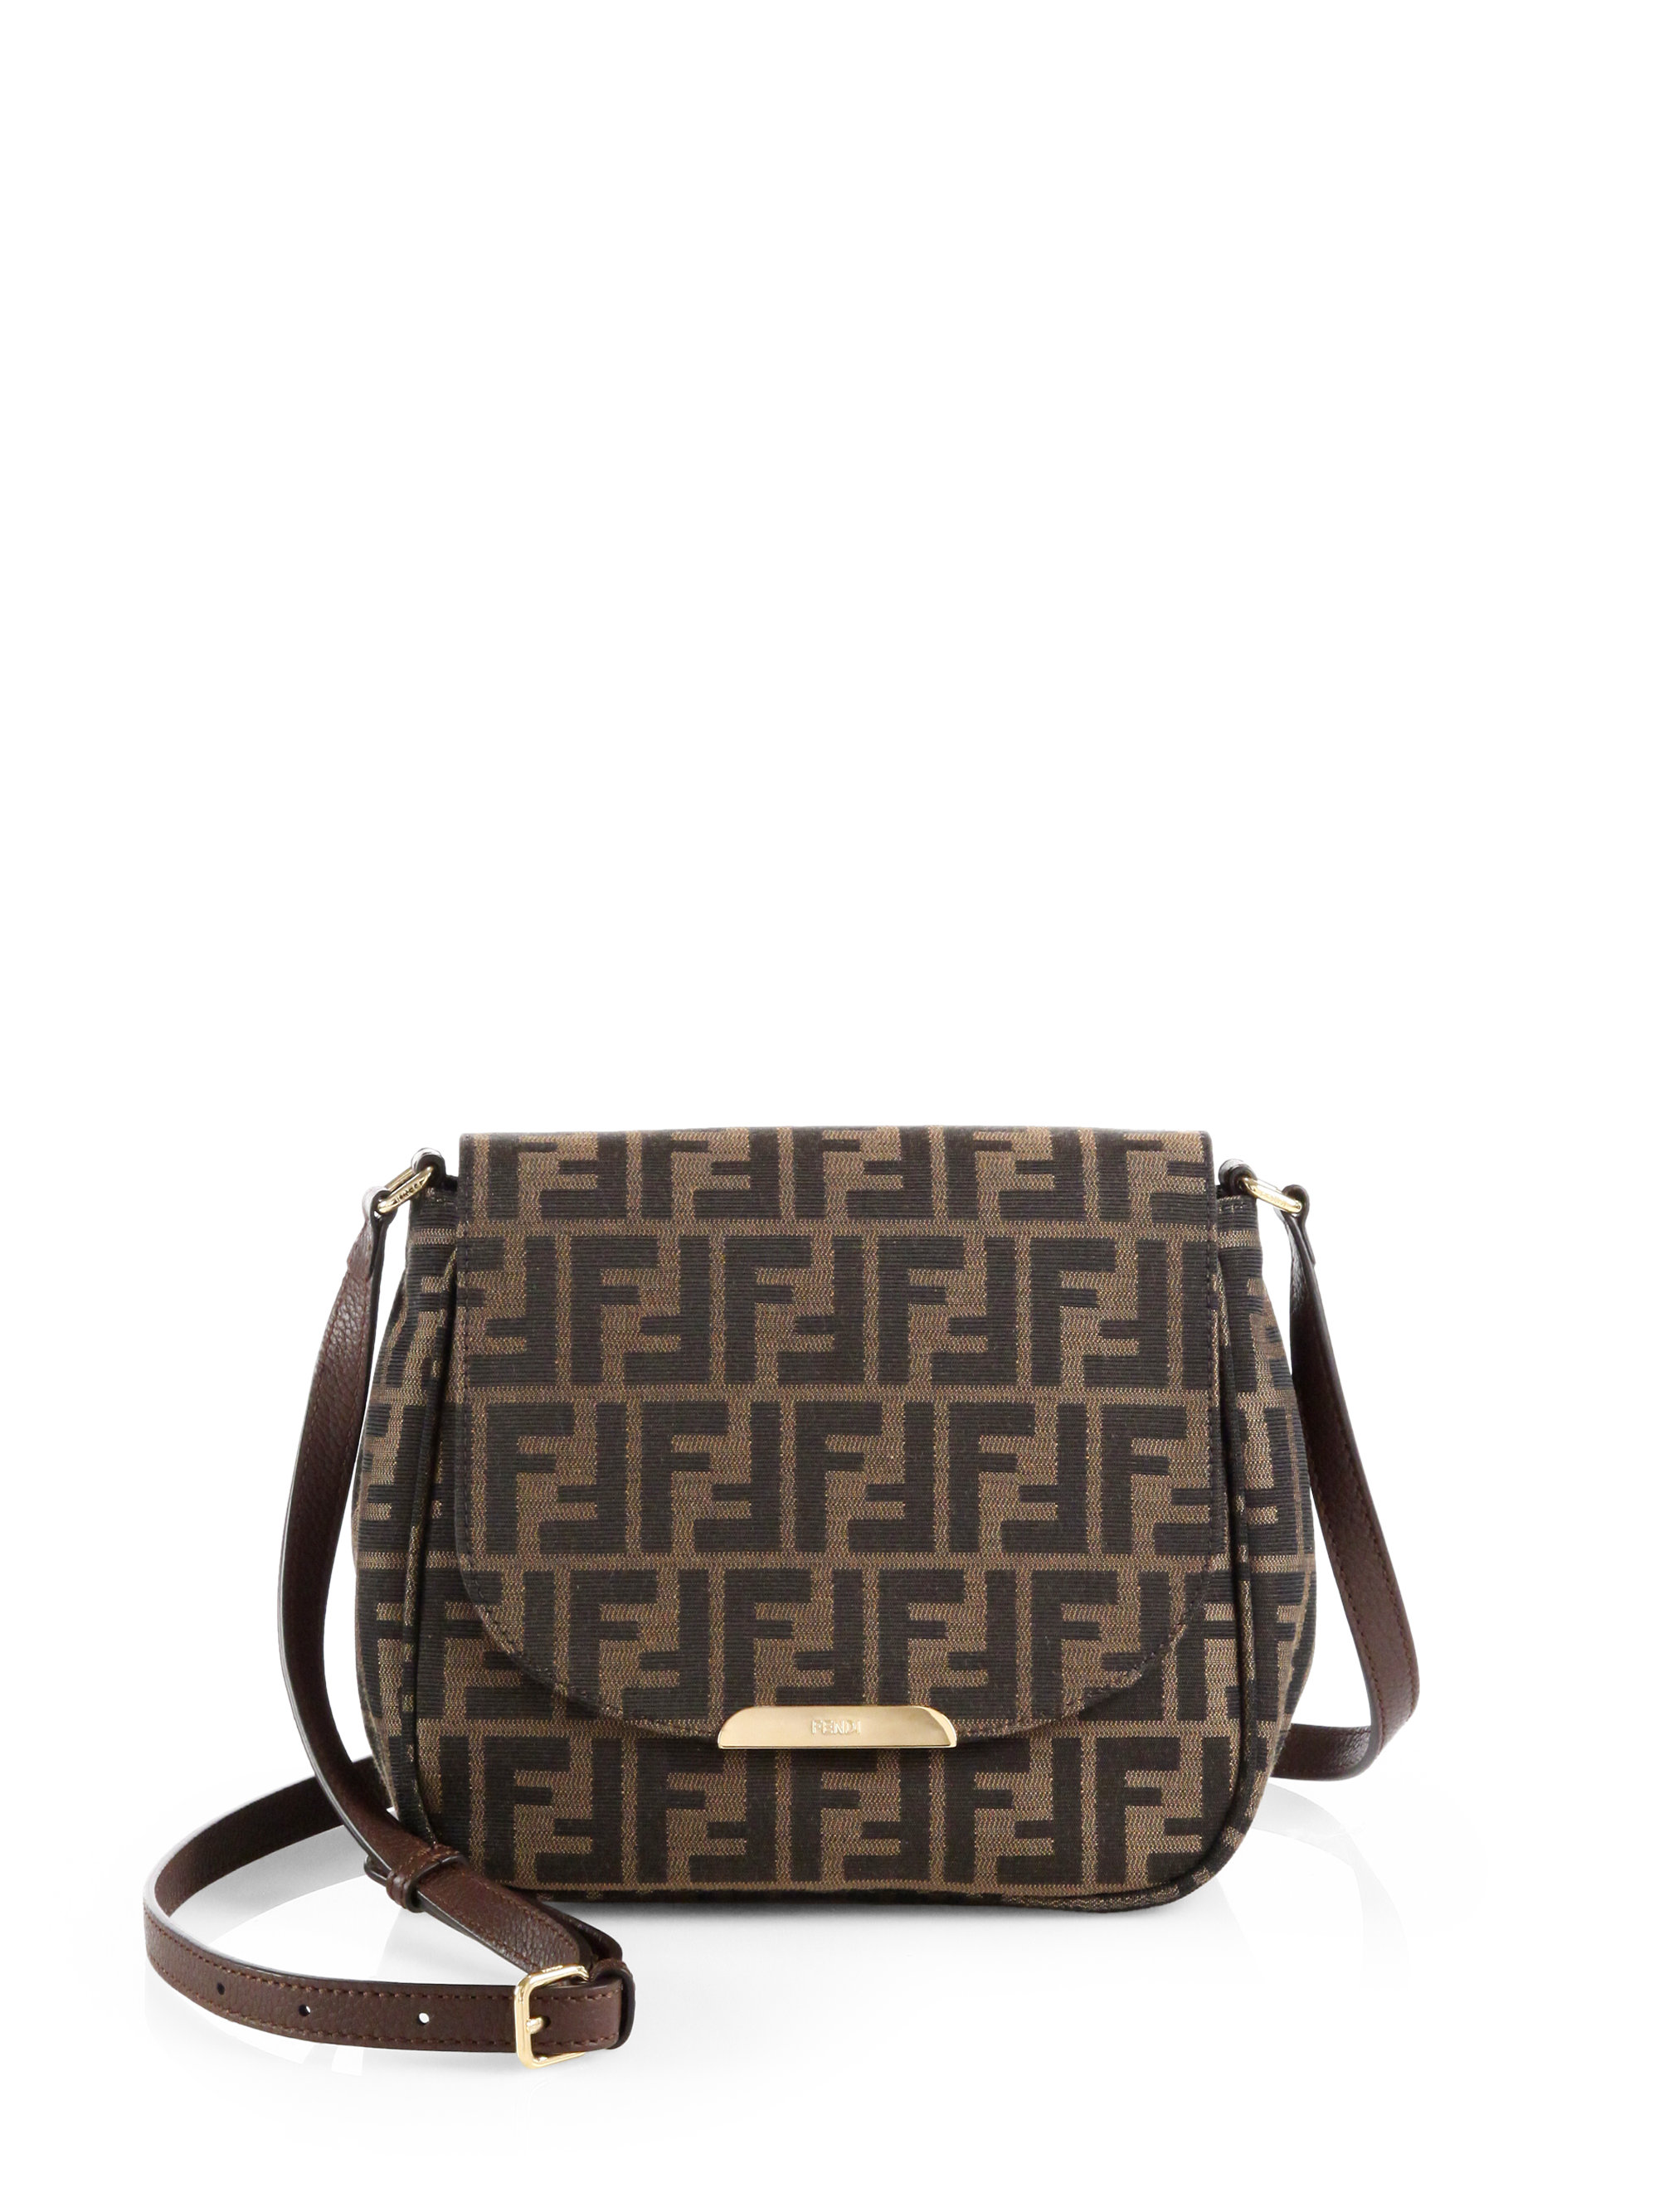 e1d1be8a4e Charitybuzz  Fendi  Zucca Forever  Shoulder Bag in Brown - Lot 1427704